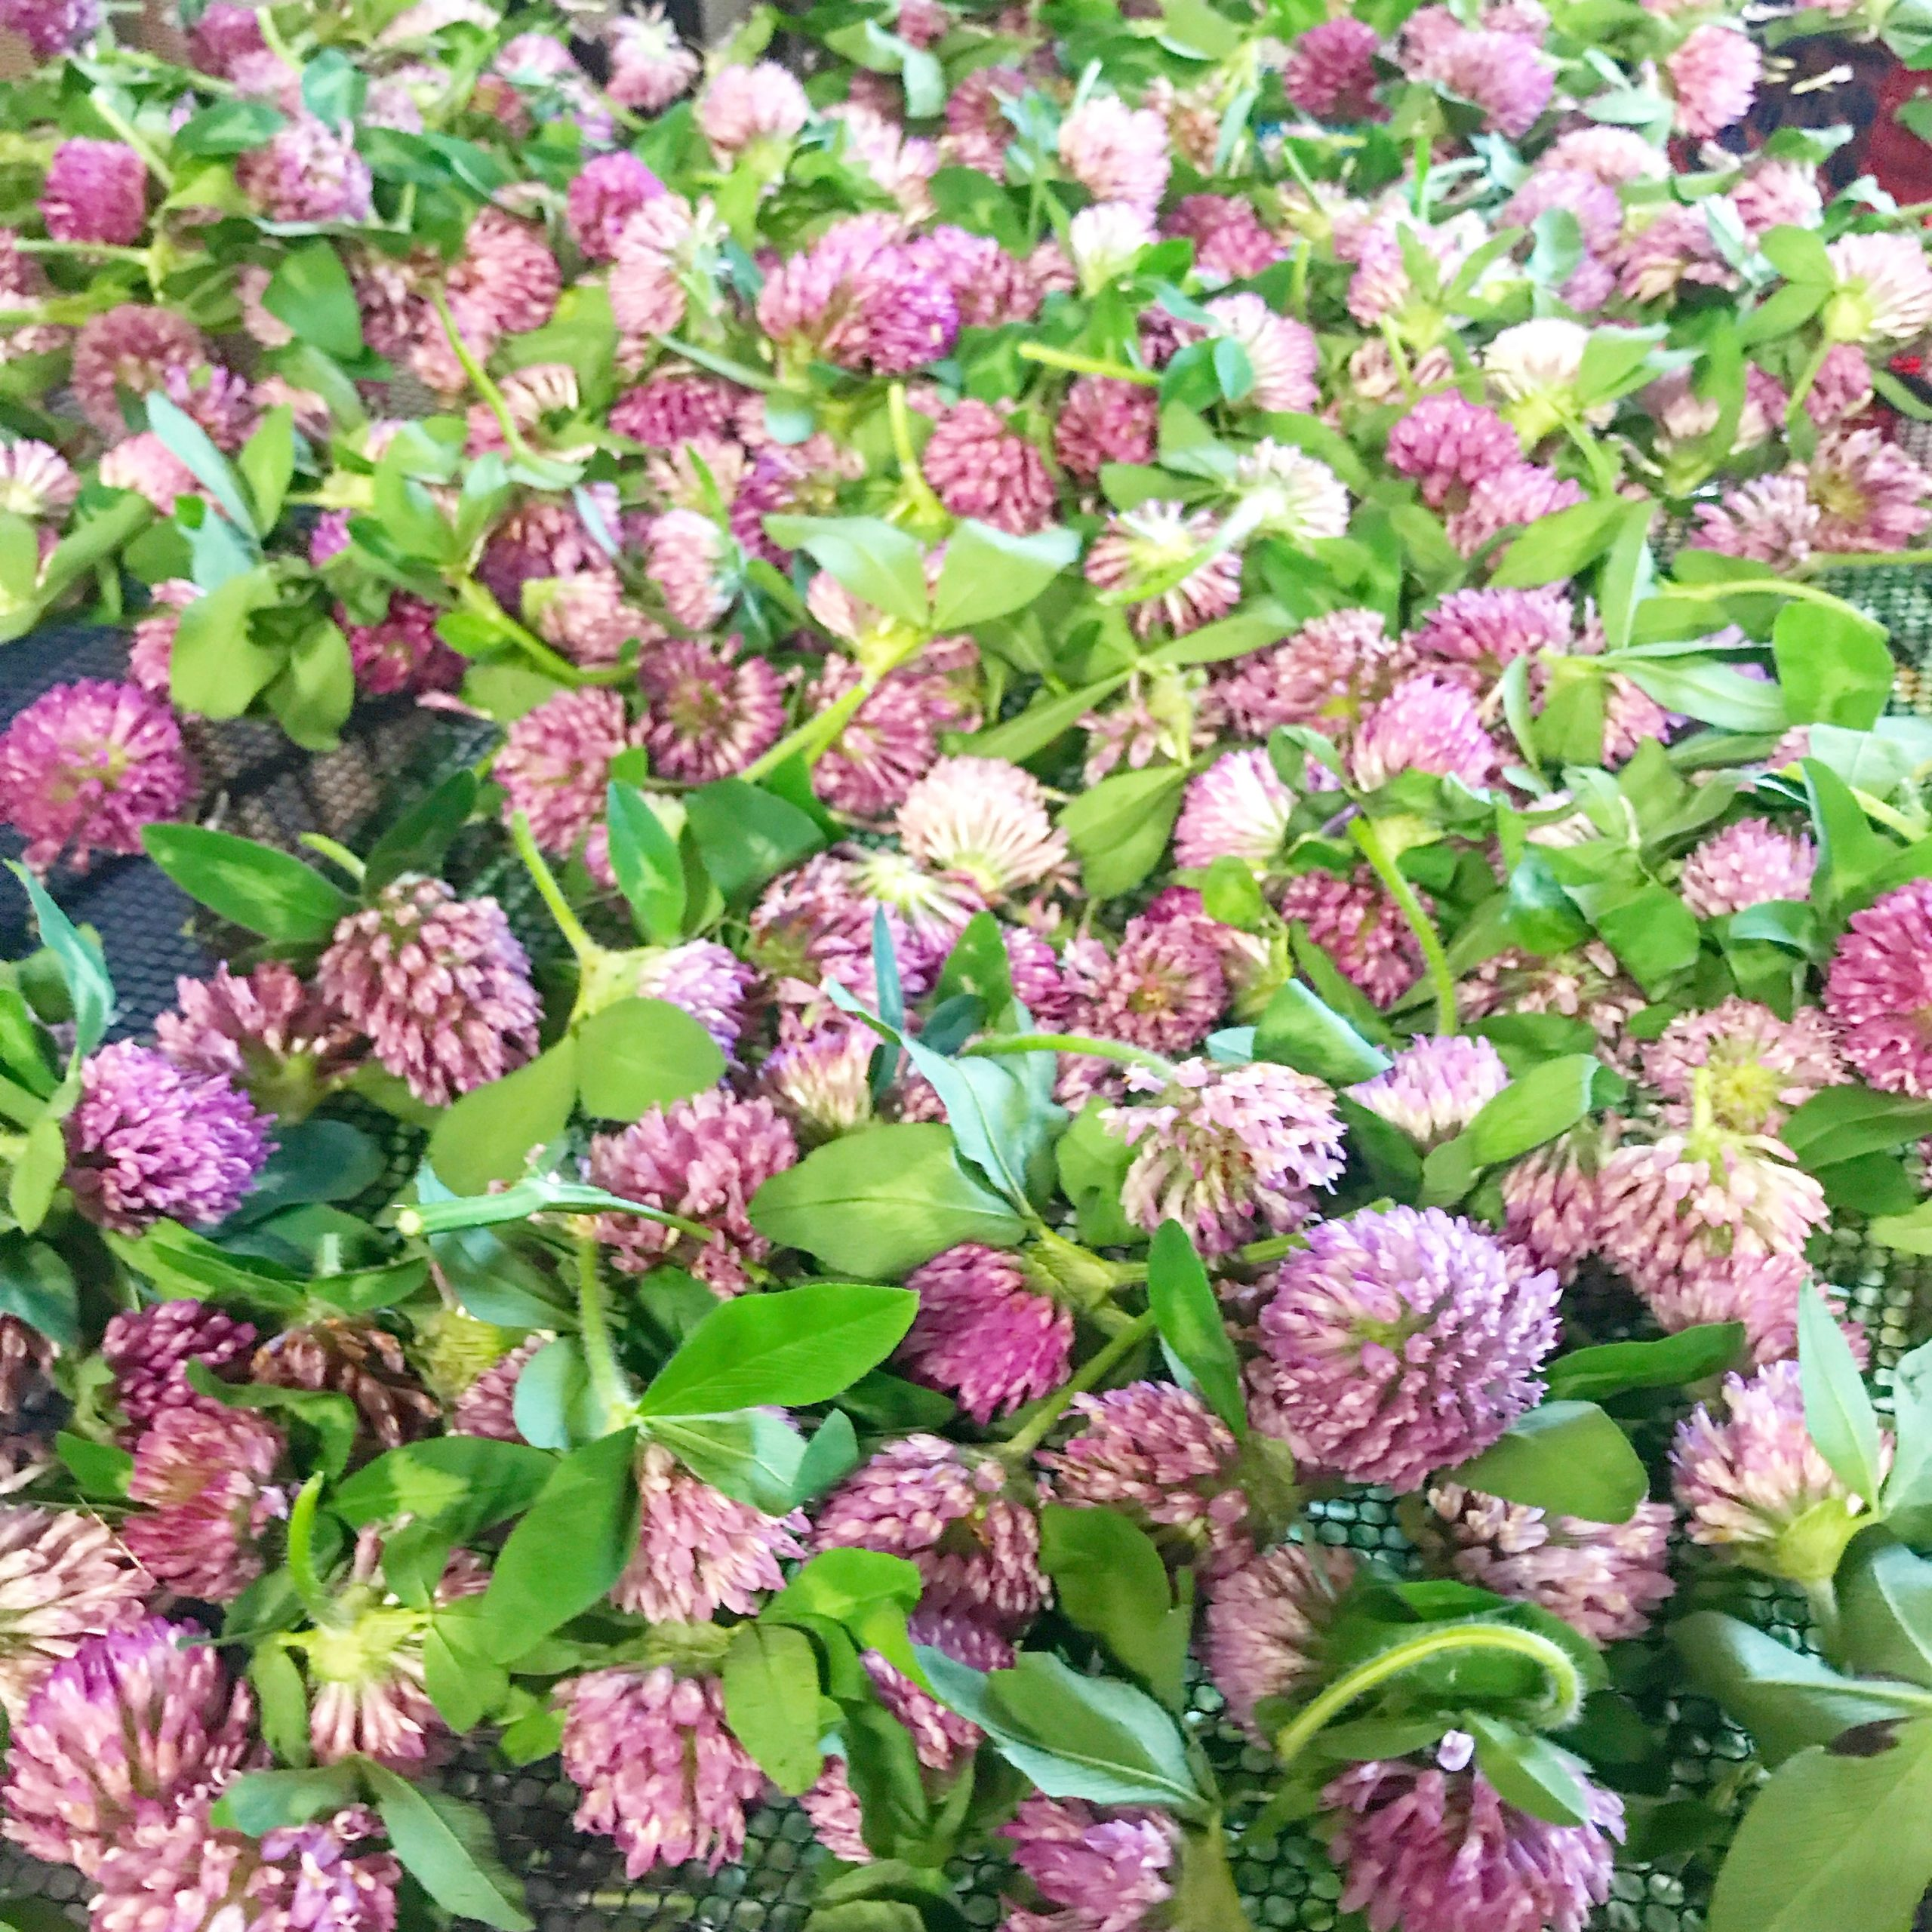 Bunch of Red Clover blossoms